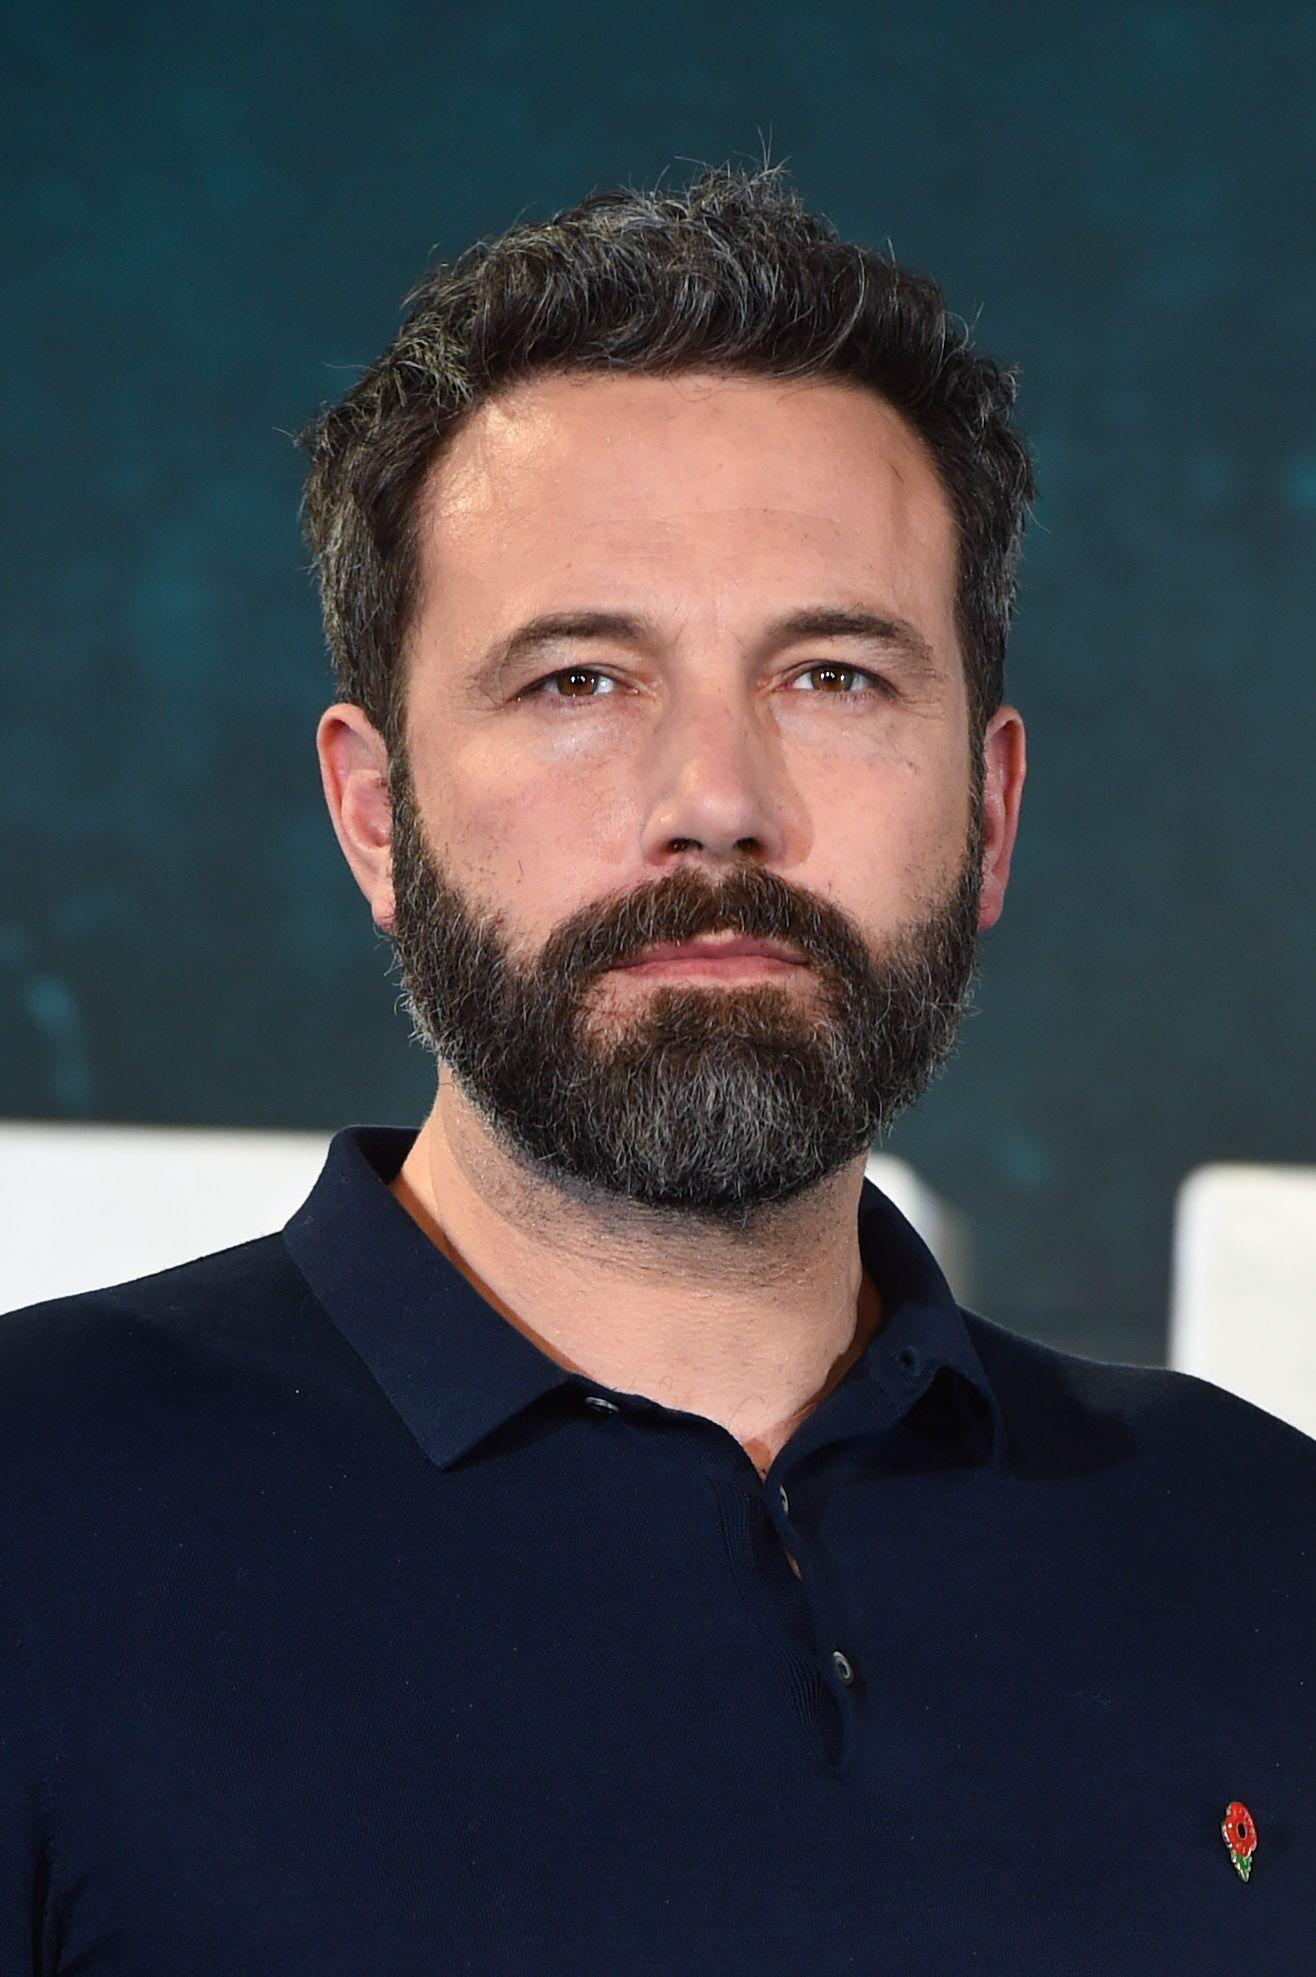 Ben Affleck s-a facut blond